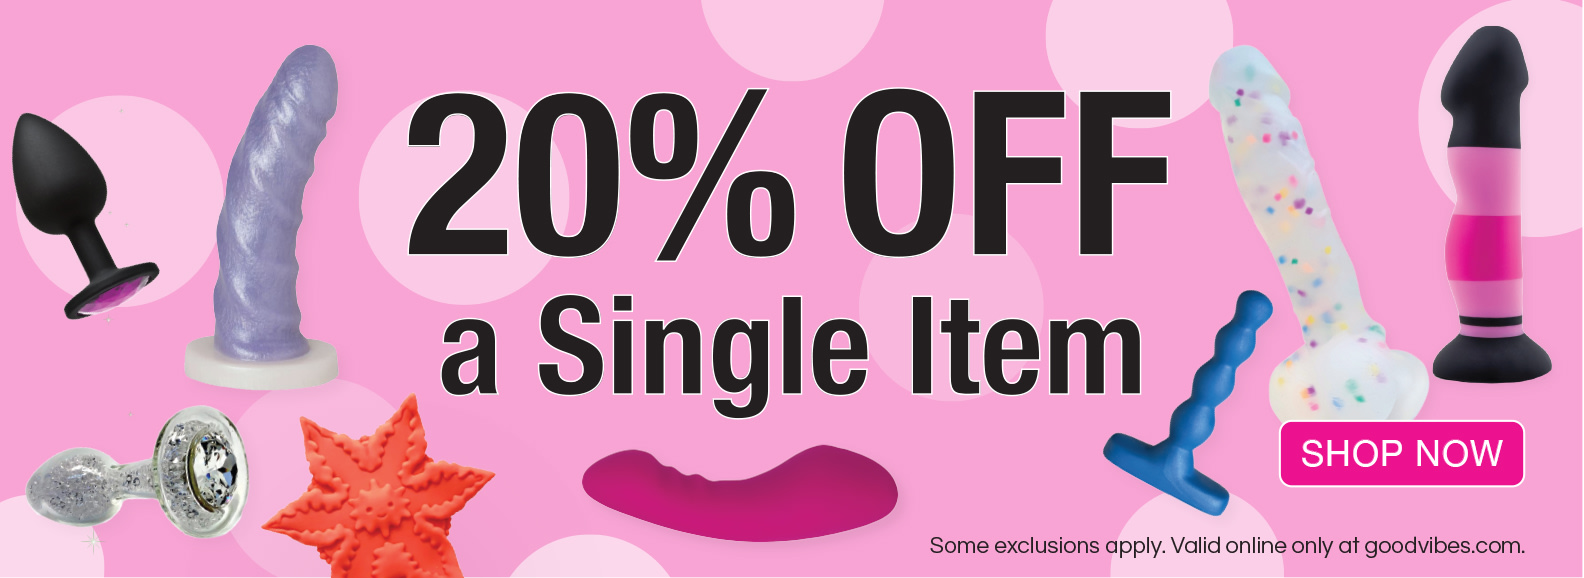 20% Off a Single Item with $75 minimum order